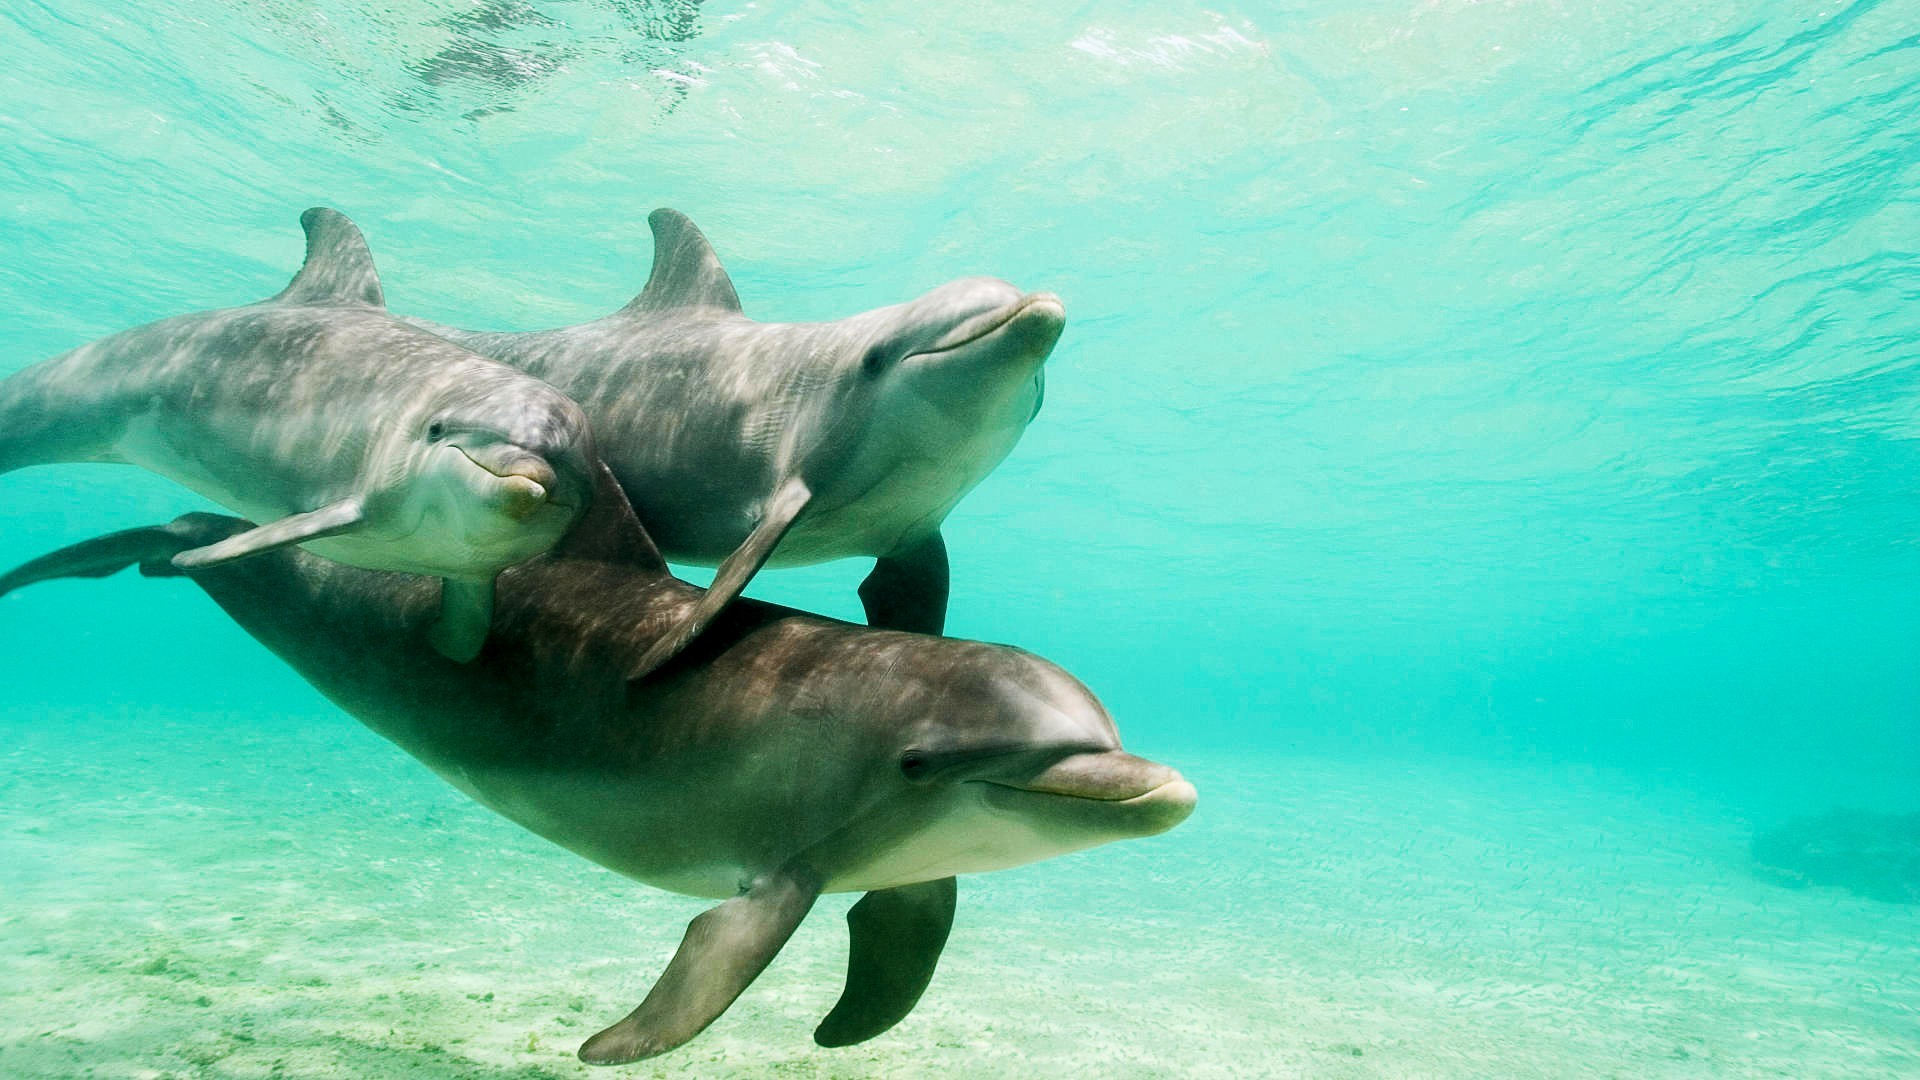 Dolphins underwater HD Wallpaper